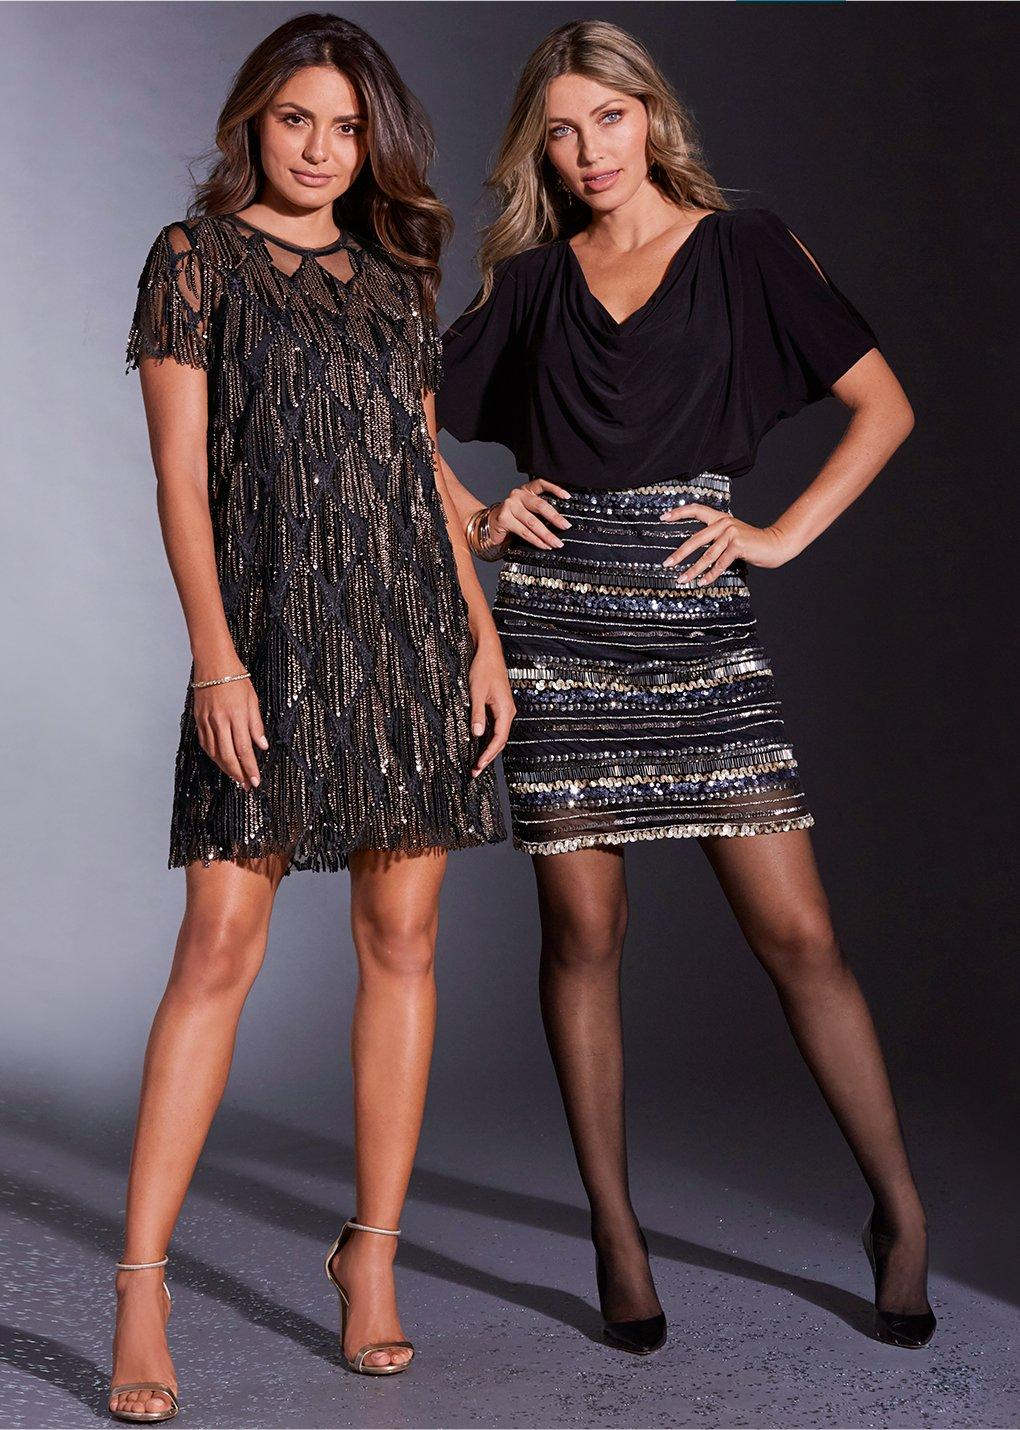 left:model wearing black dress with gold fringe. right: model wearing dress with black top and sequined bottom